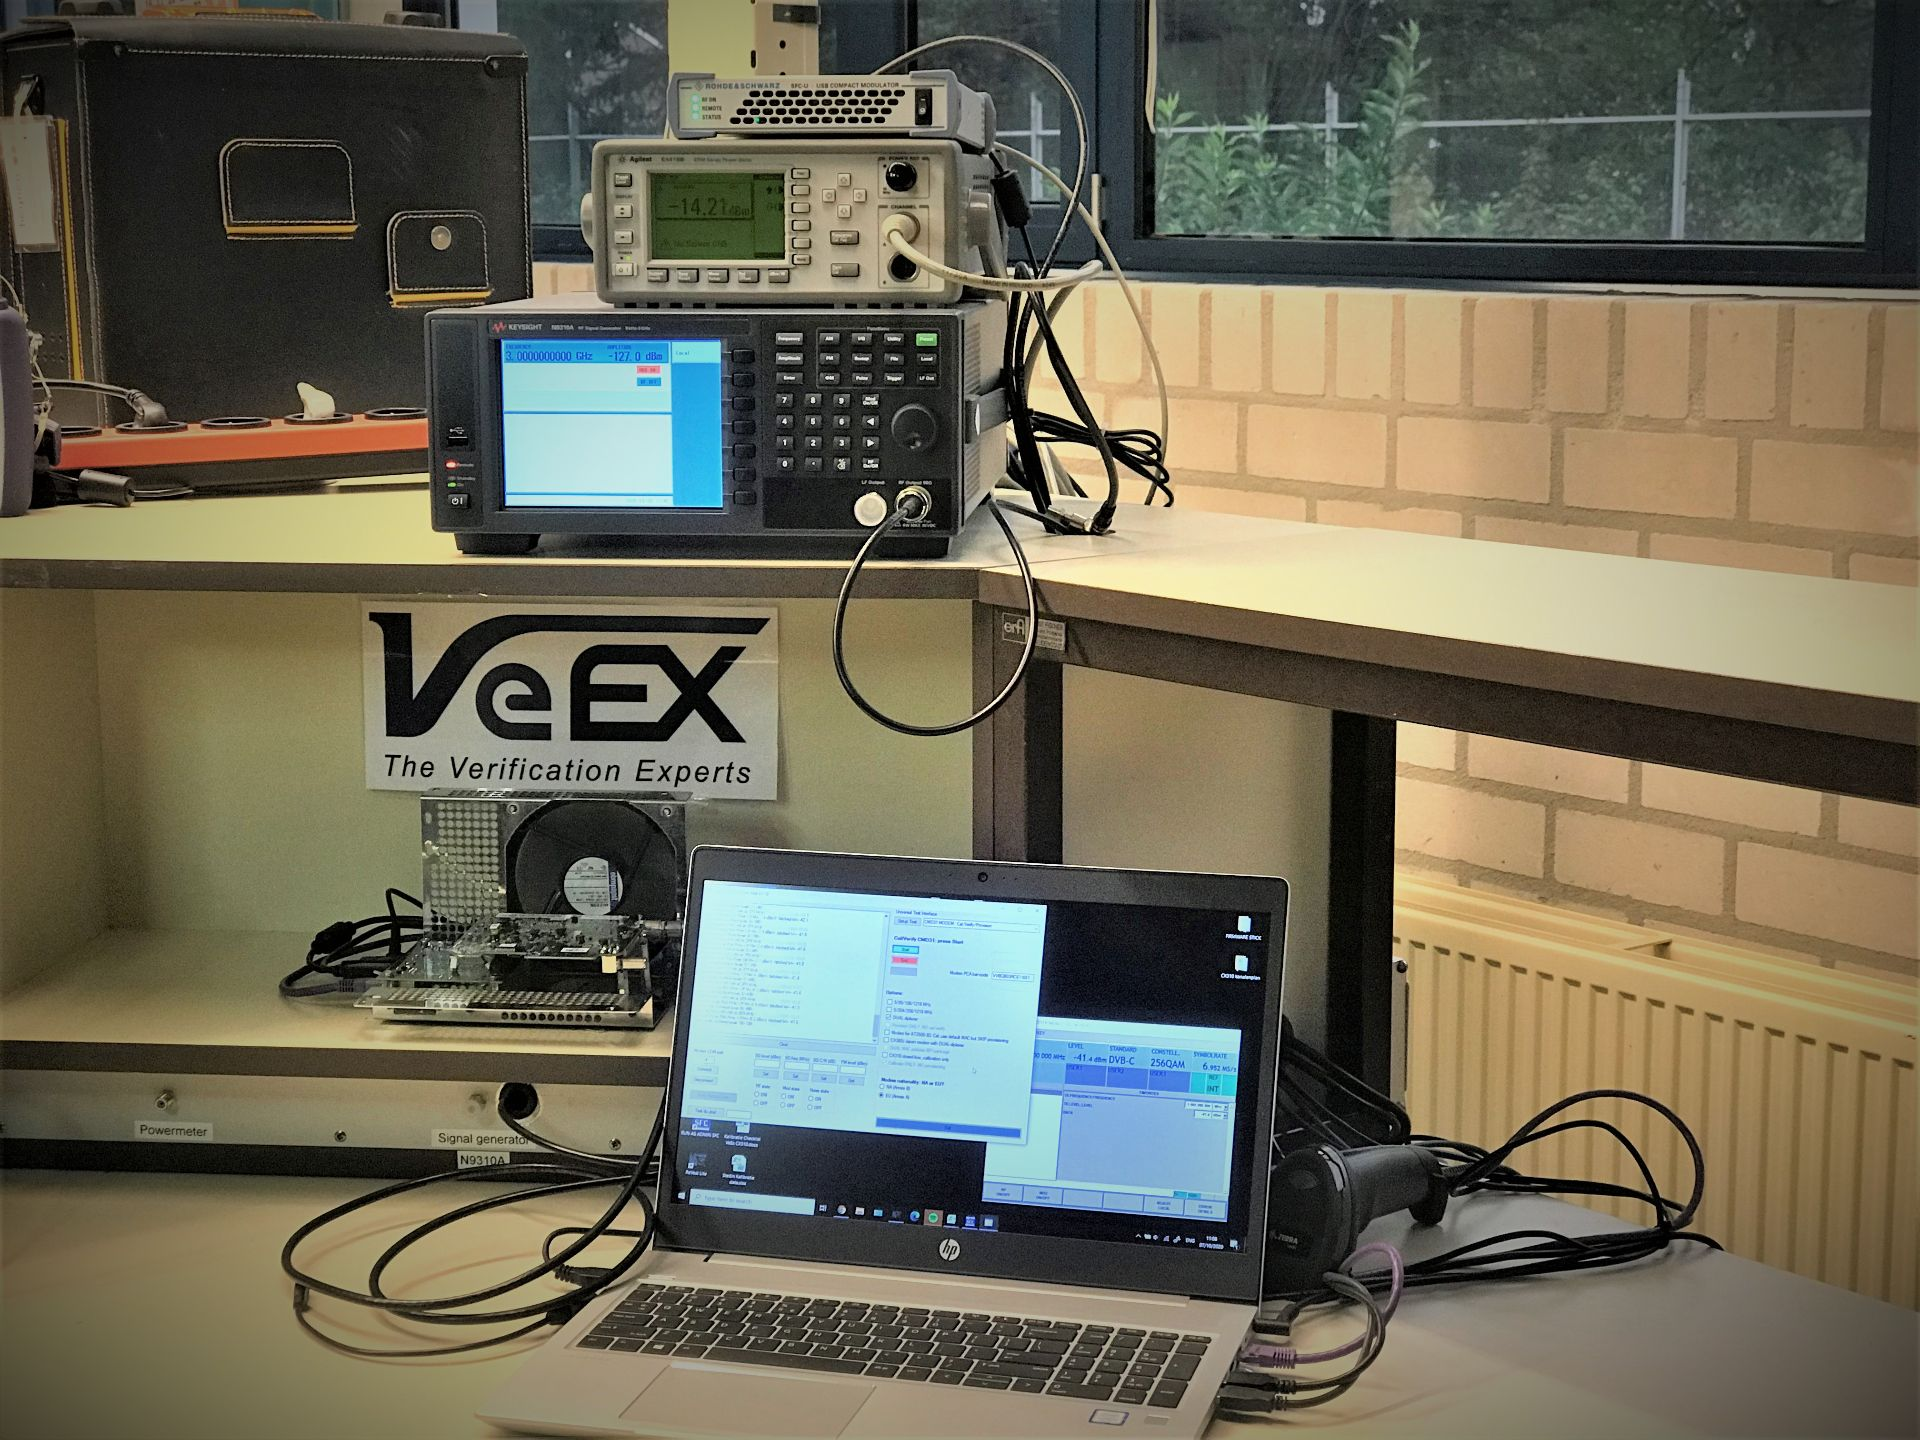 Heynen, your partner for maintaining, repairing and calibrating VeEX equipment